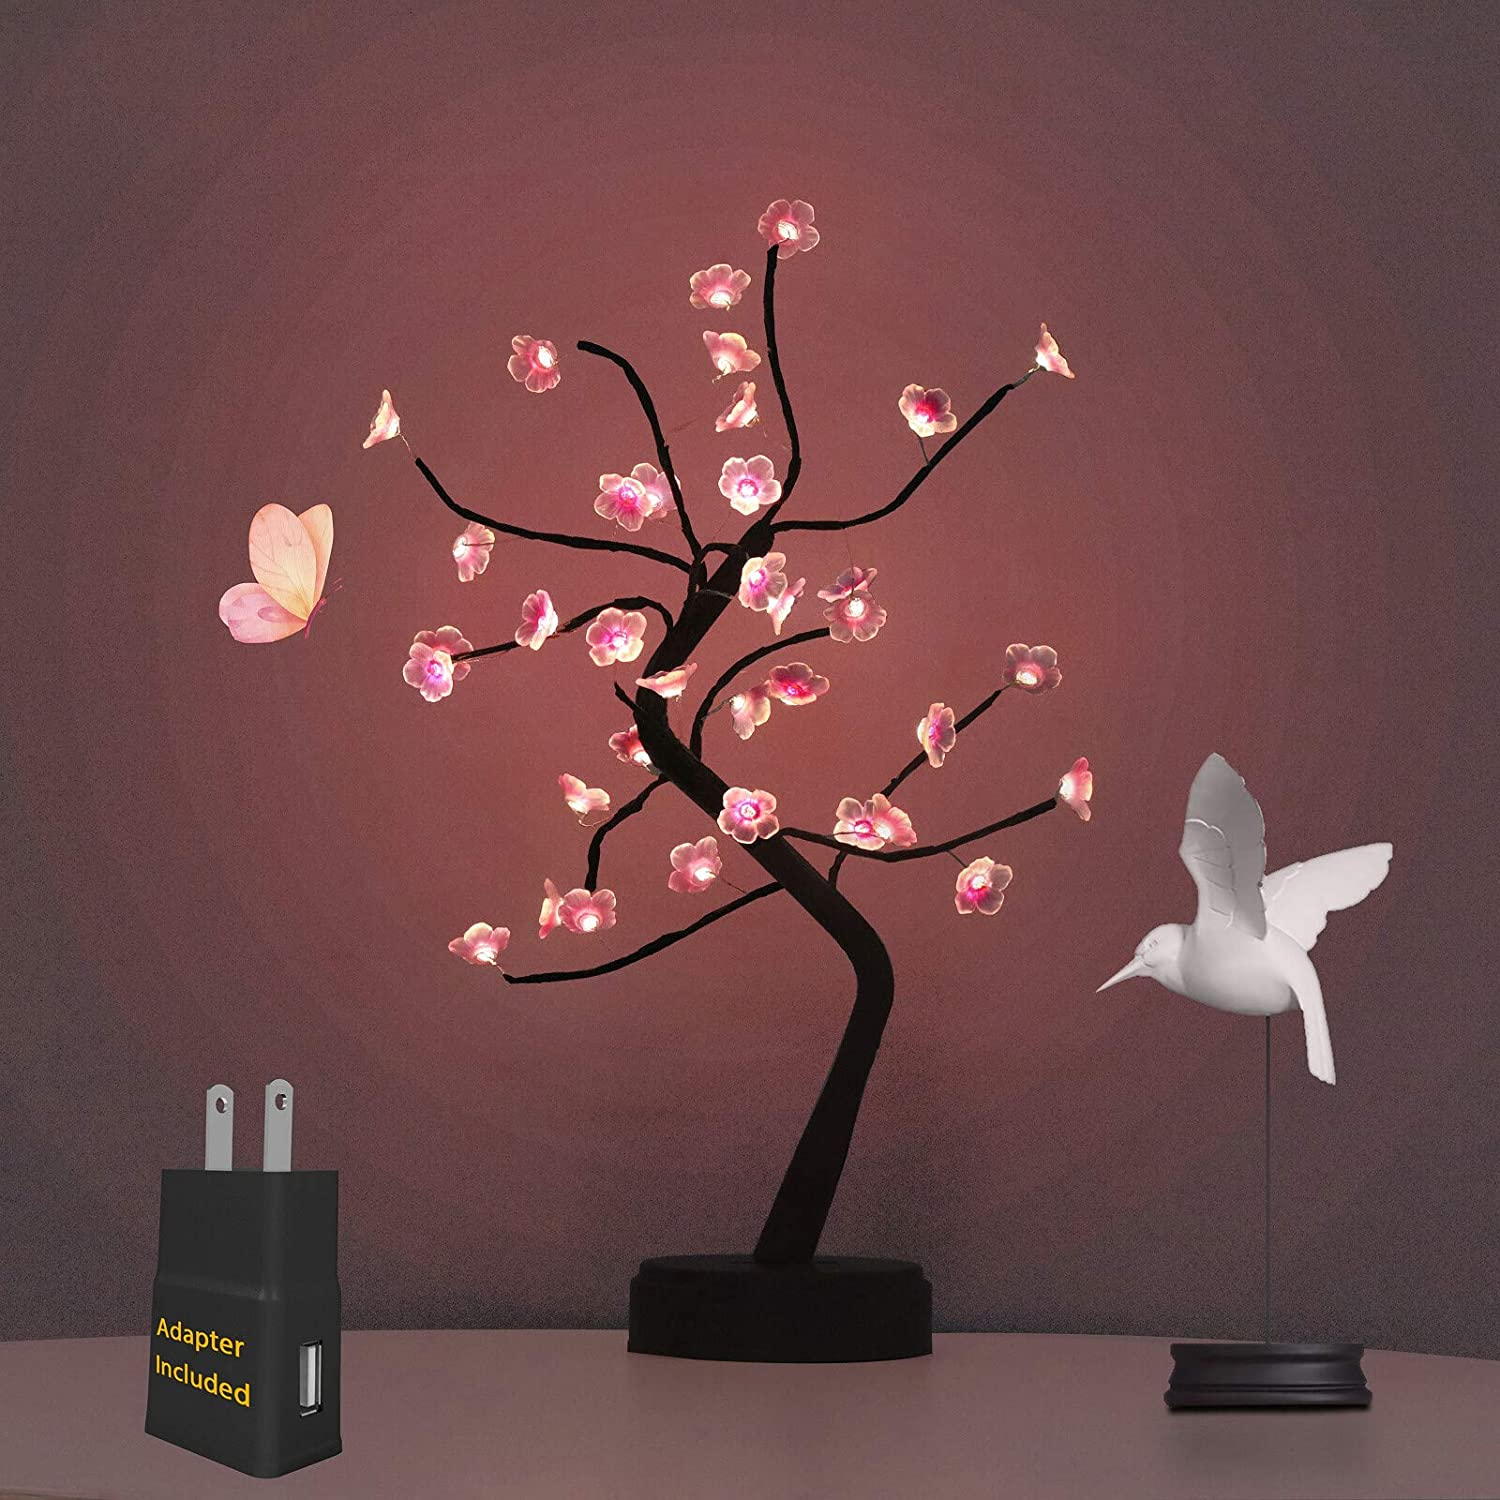 Bonsai Tree Light with Adapter Included, Tree Lamps for Living Room, Cute Night Light for House Decor, Good for Gifts, Home Decorations, Weddings, Christmas and More (Pink Cherry Blossom, 36 LED)